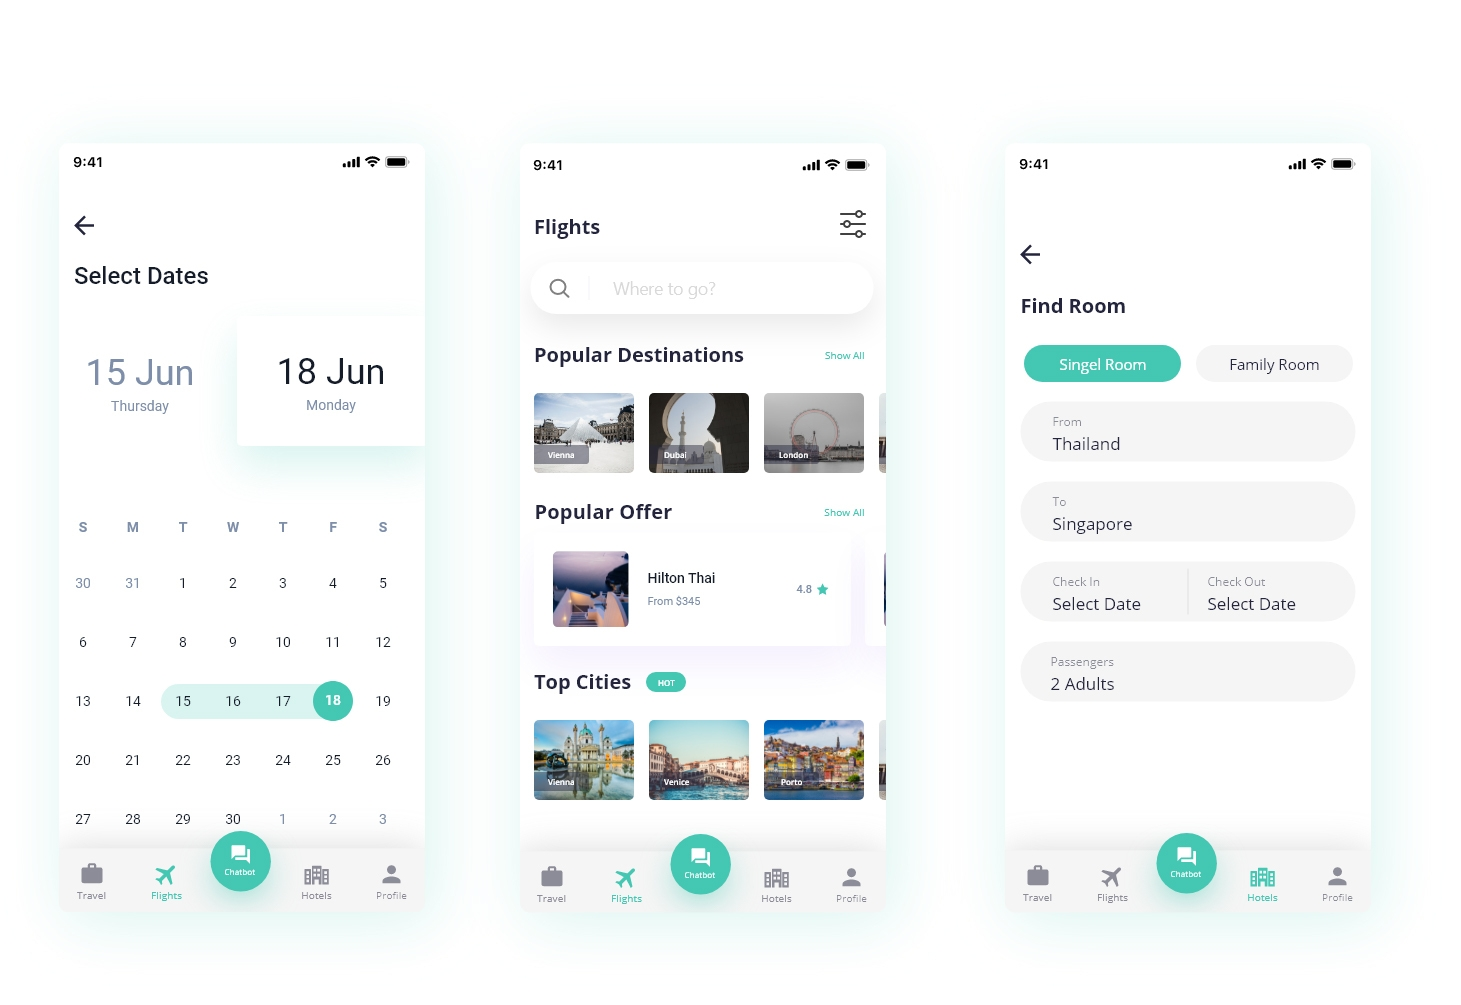 Basic Features to Integrate into Travel Booking App